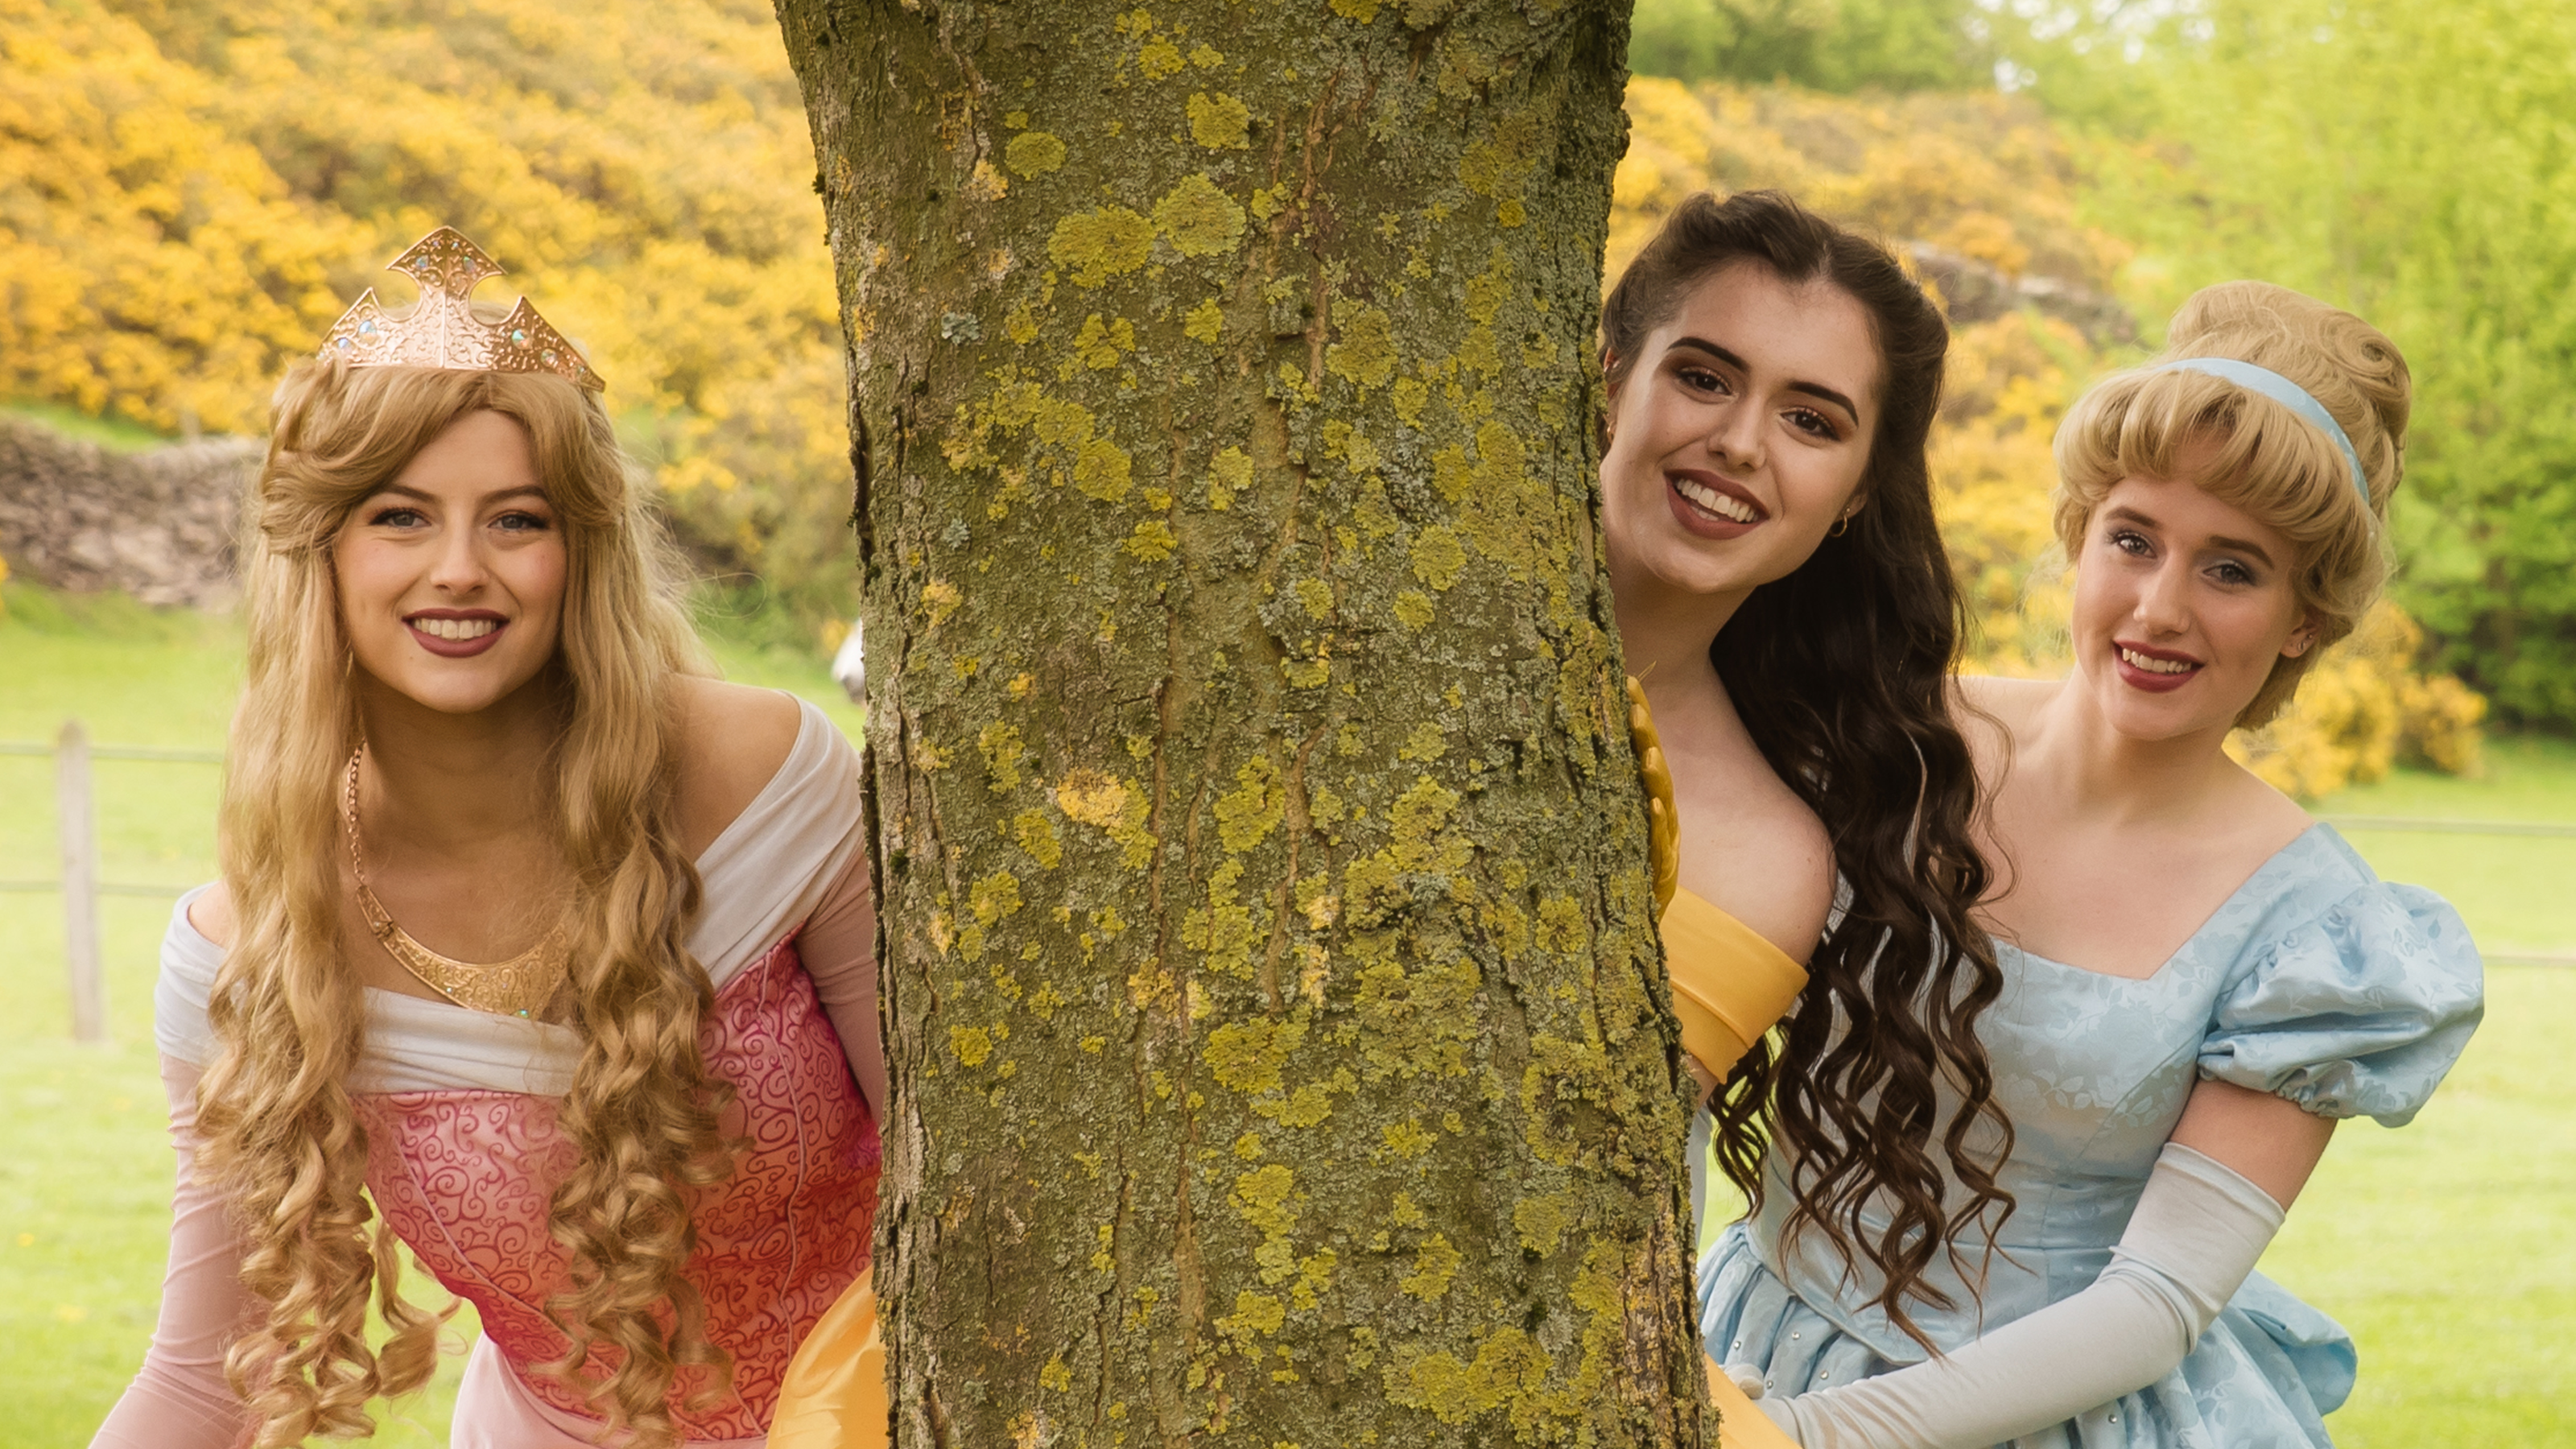 3 Princesses hiding behind a tree